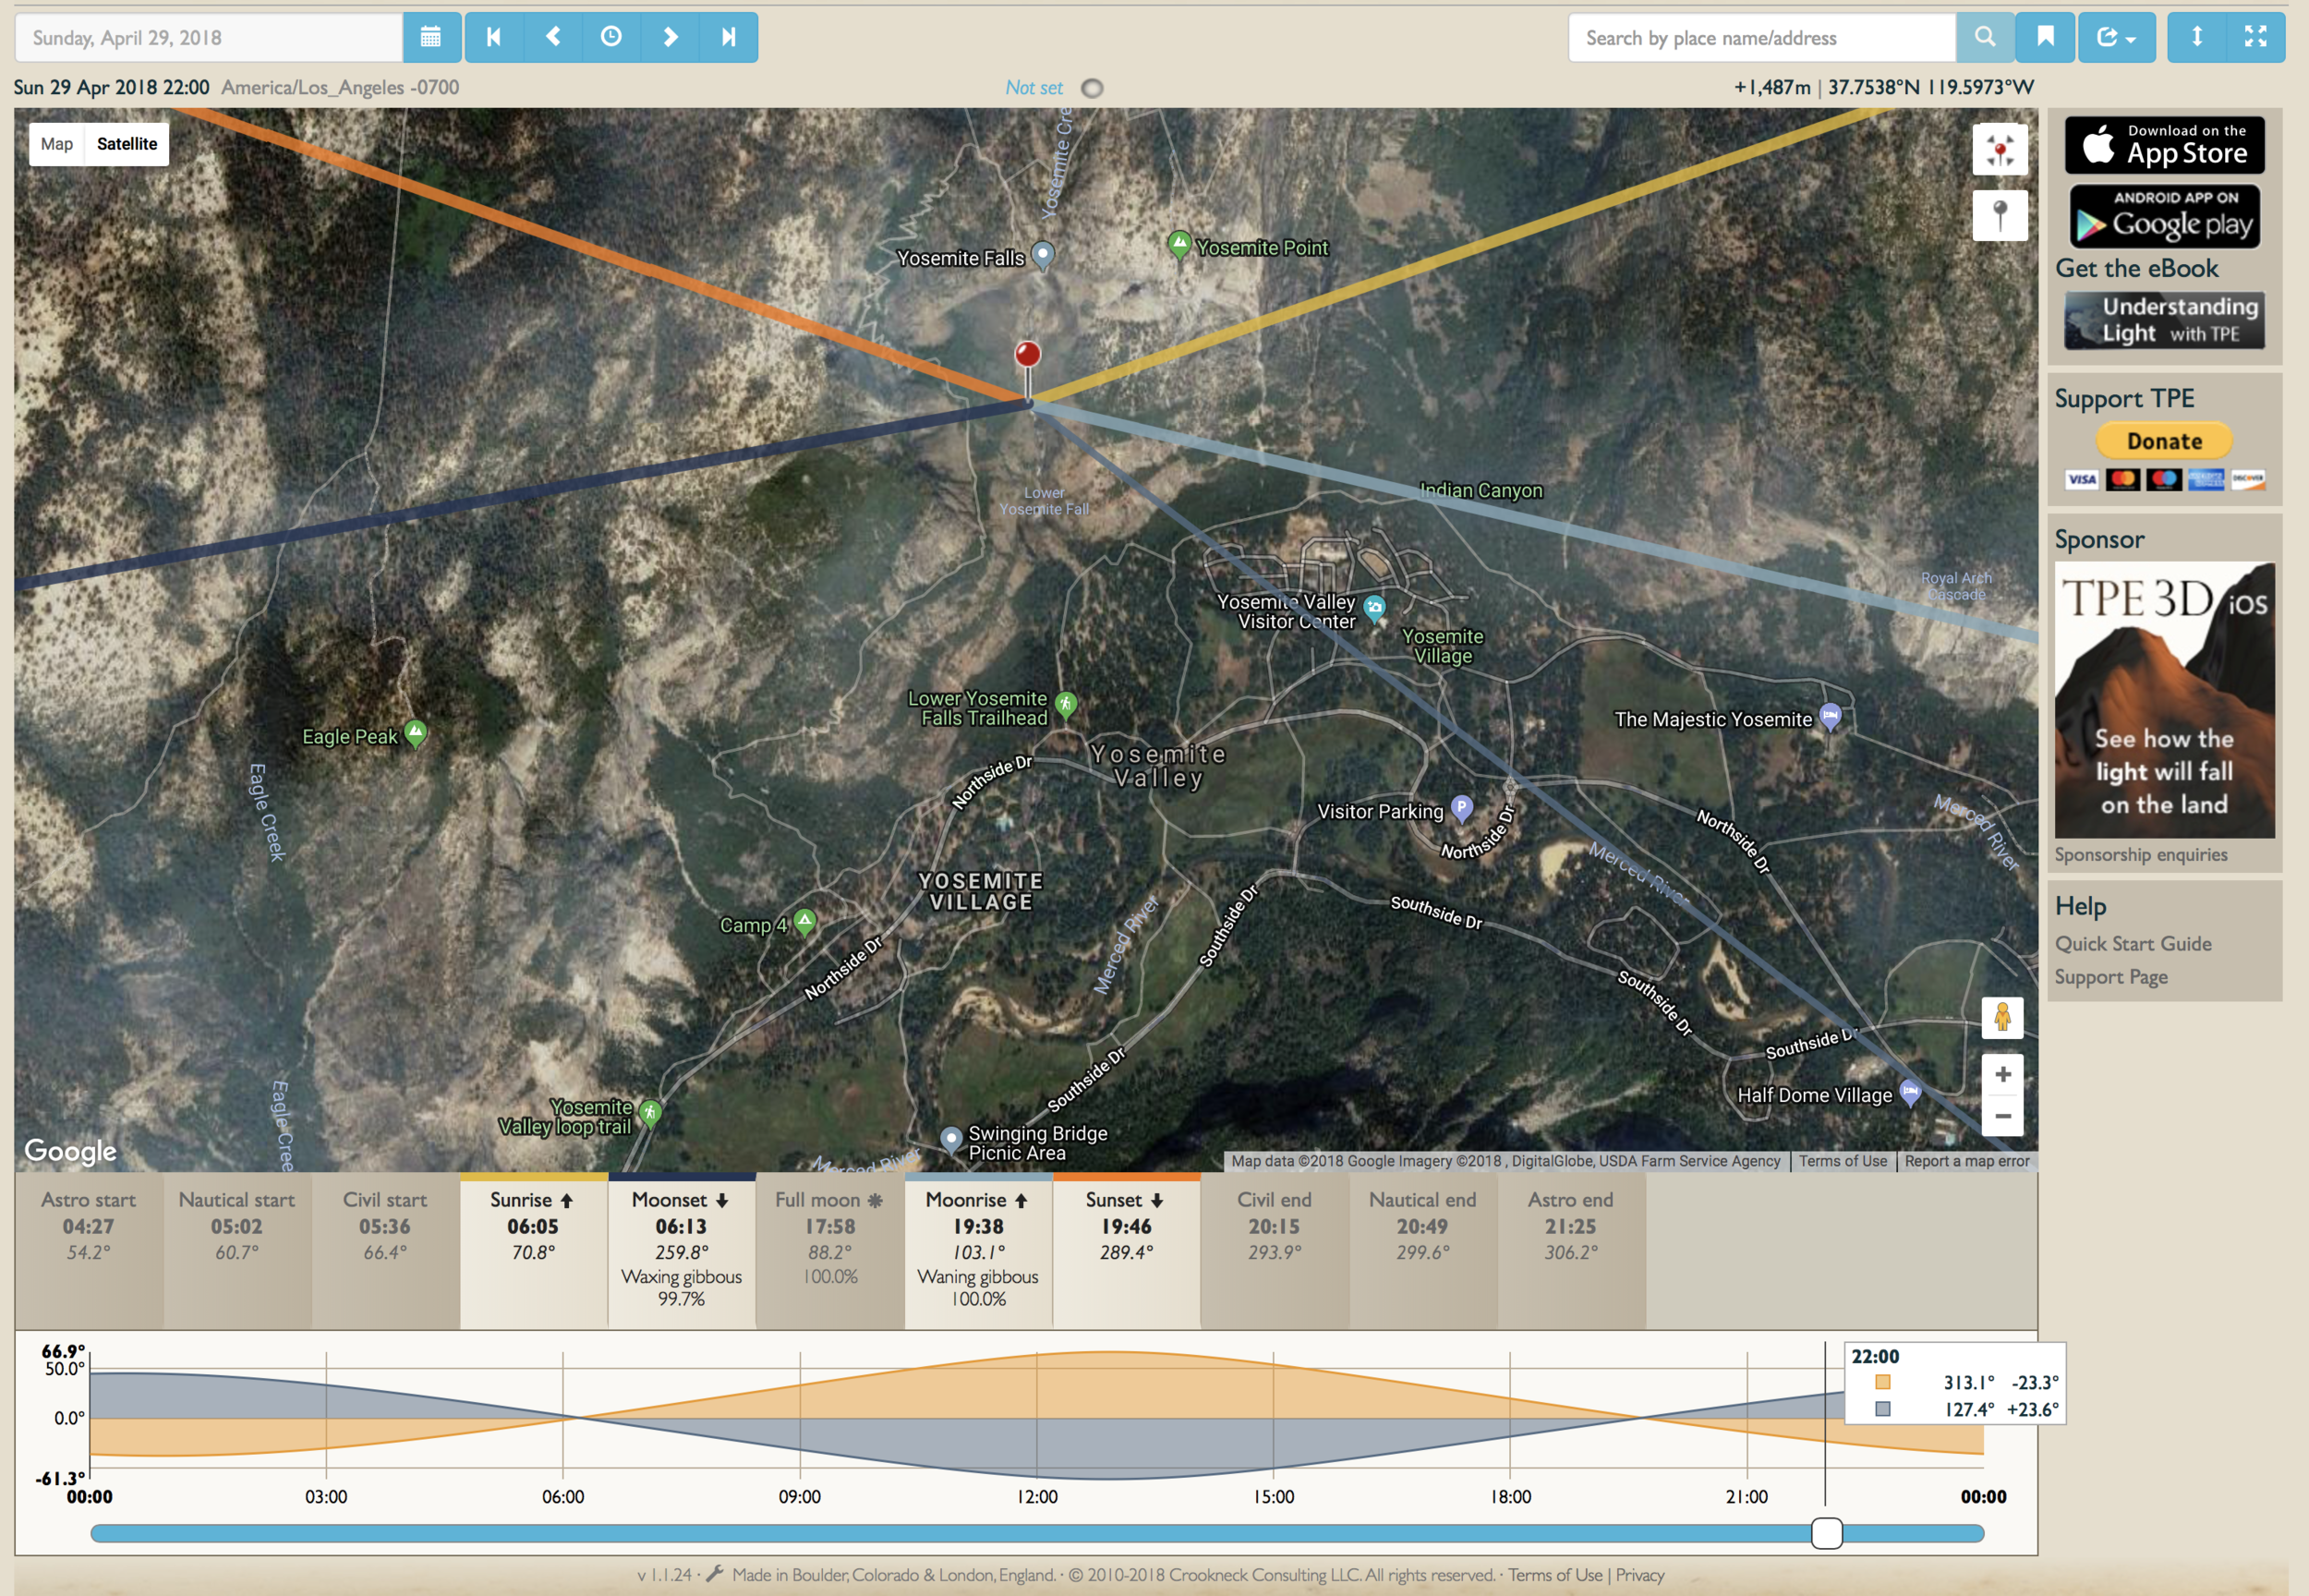 TPE screenshot showing full moon angles for Yosemite Falls